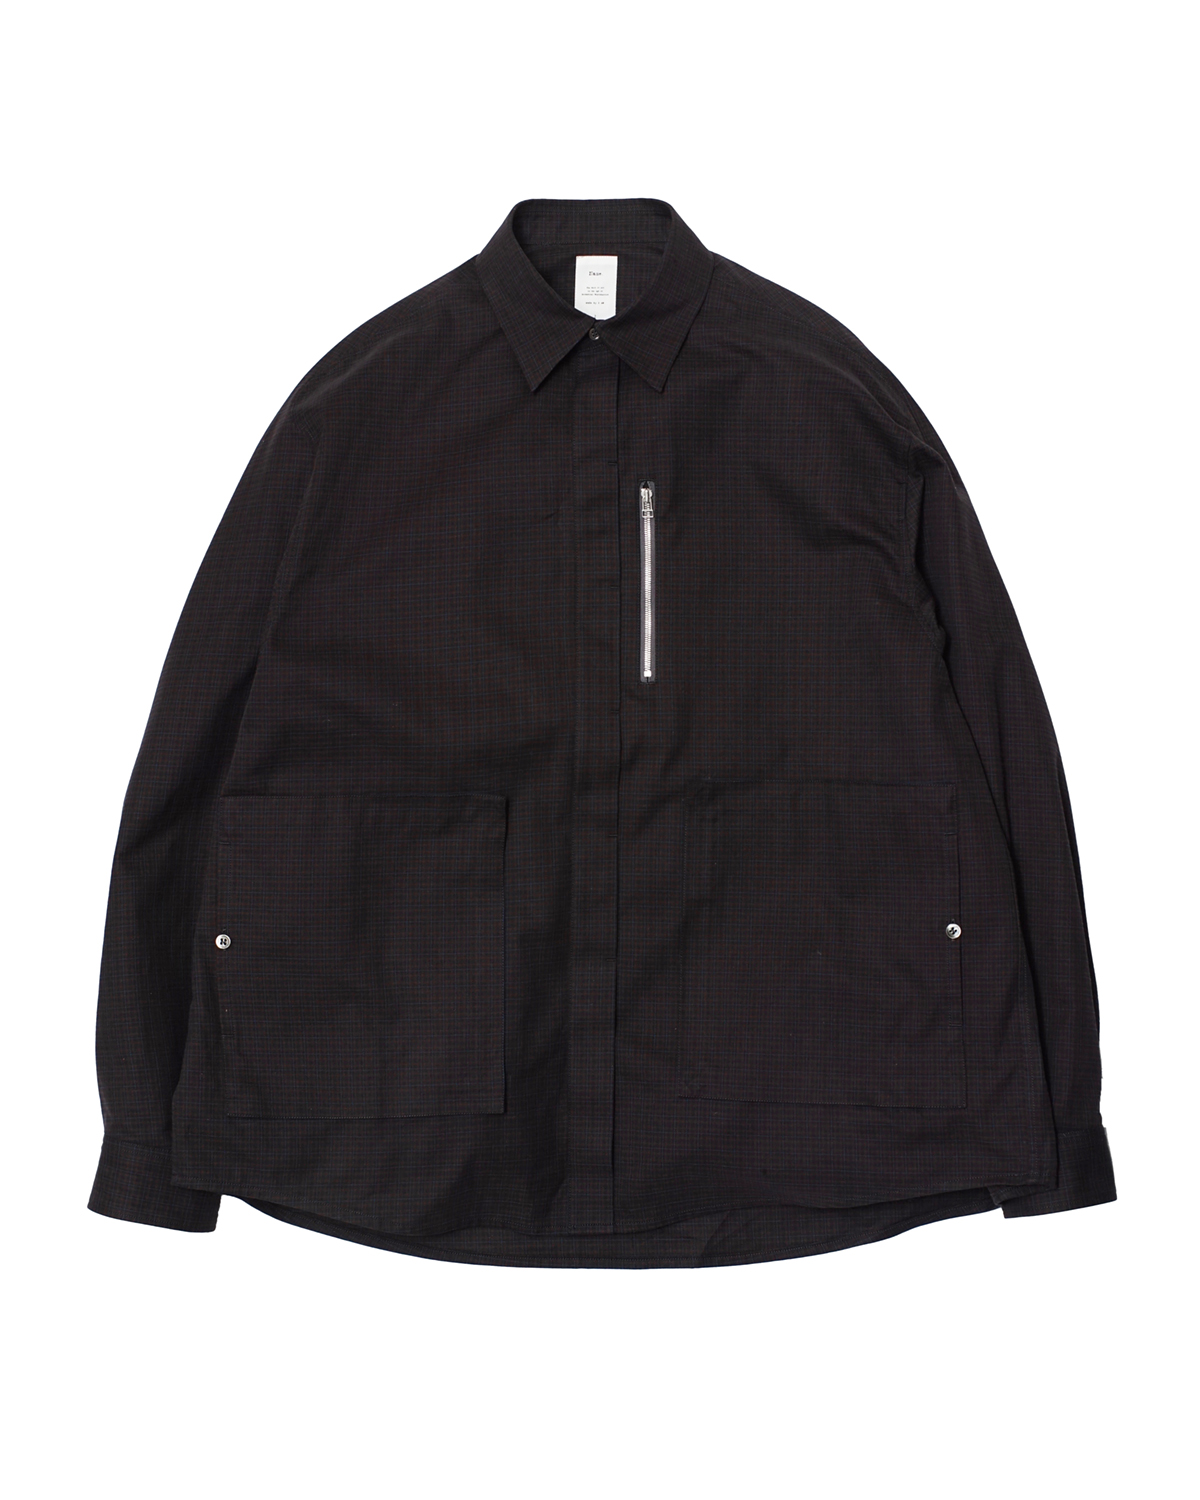 NMSH-20AW-004